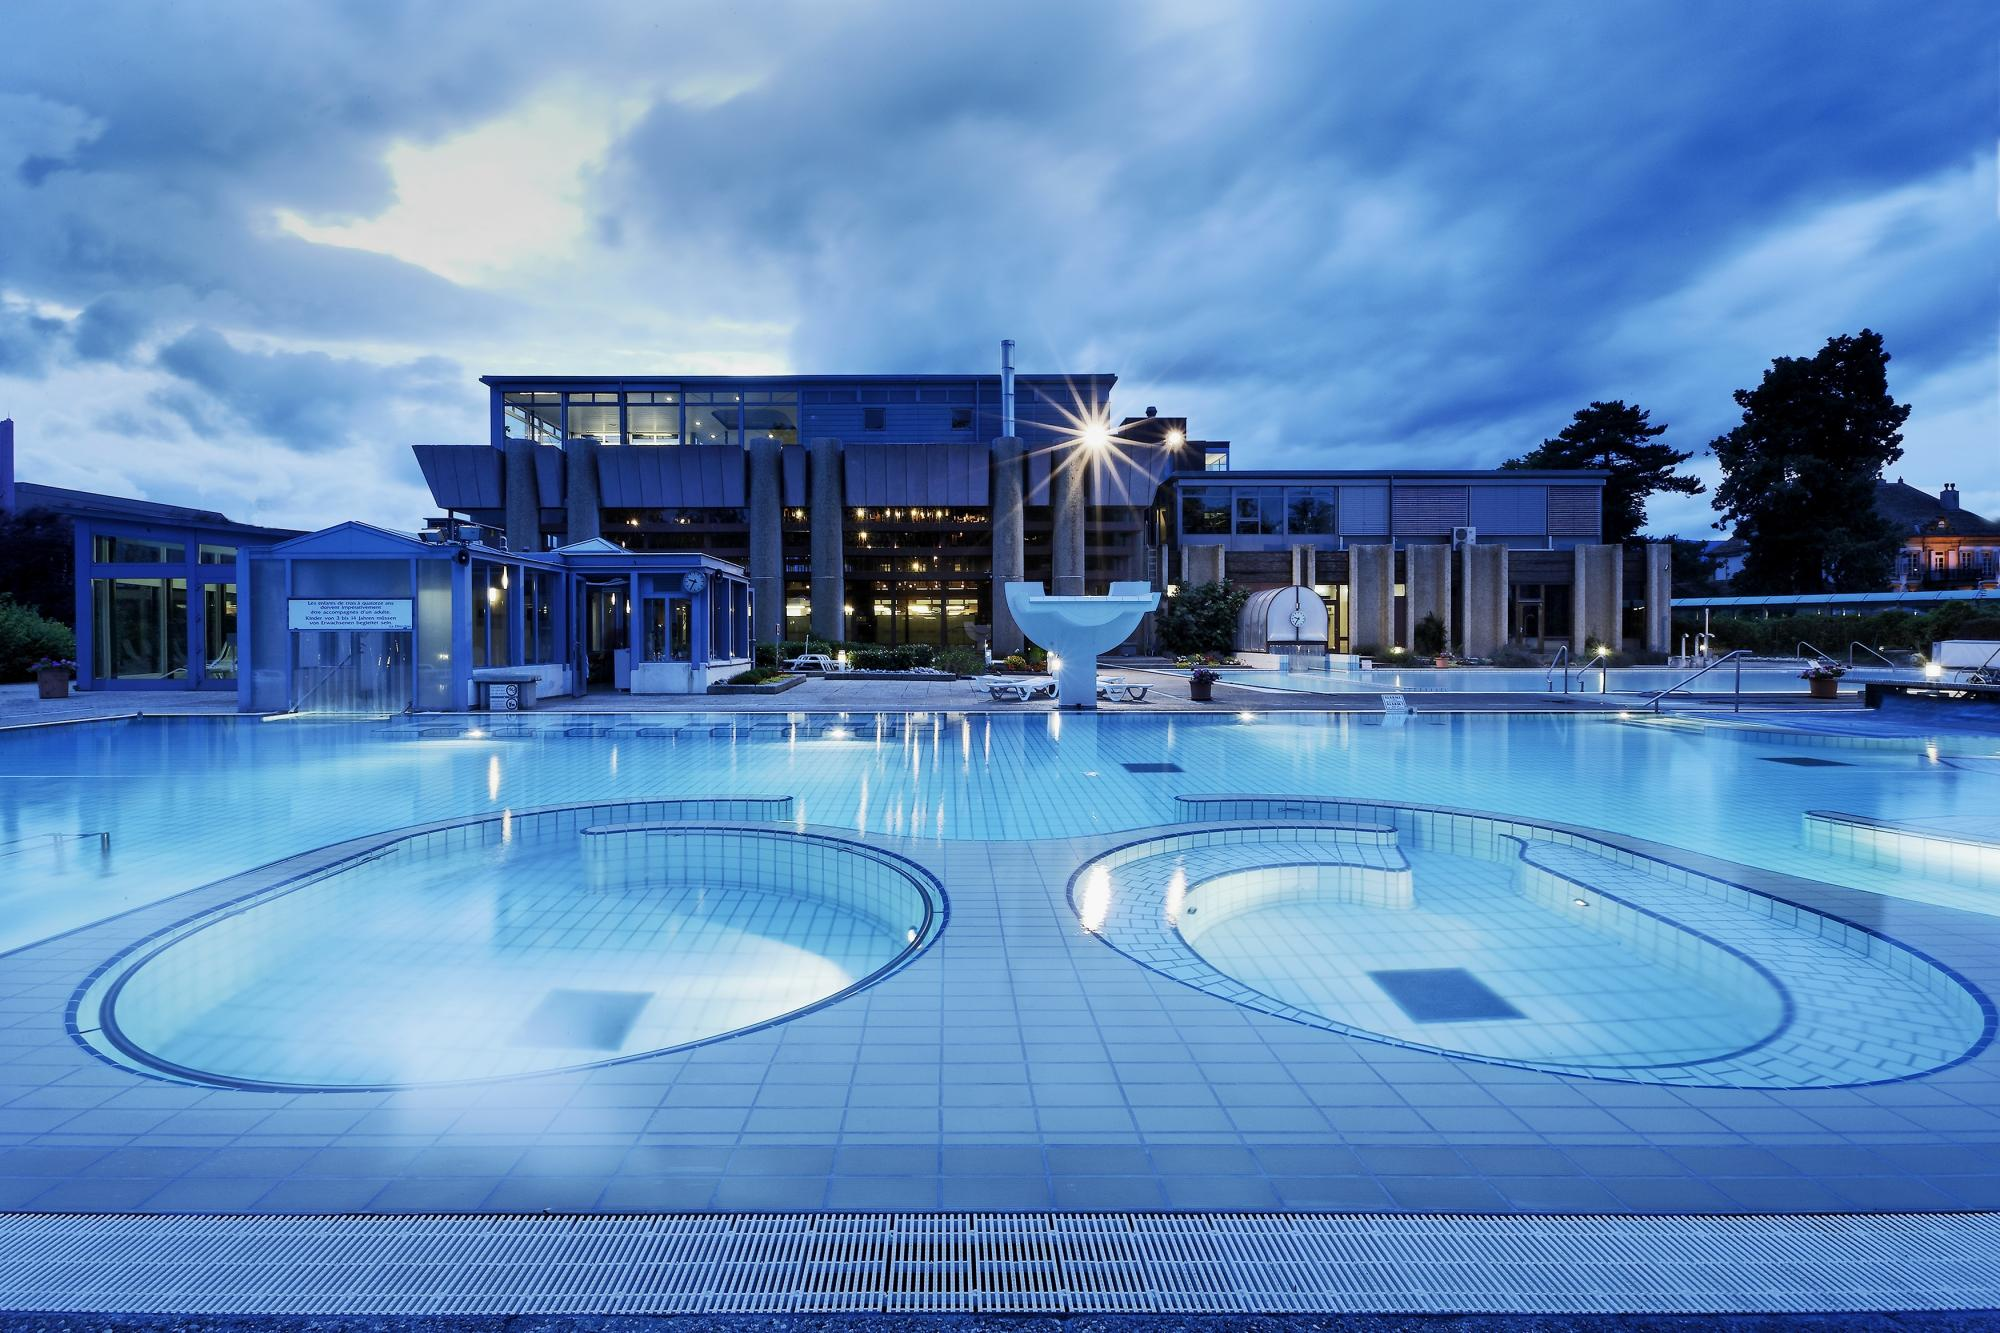 Thermal Center Yverdon-les-Bains